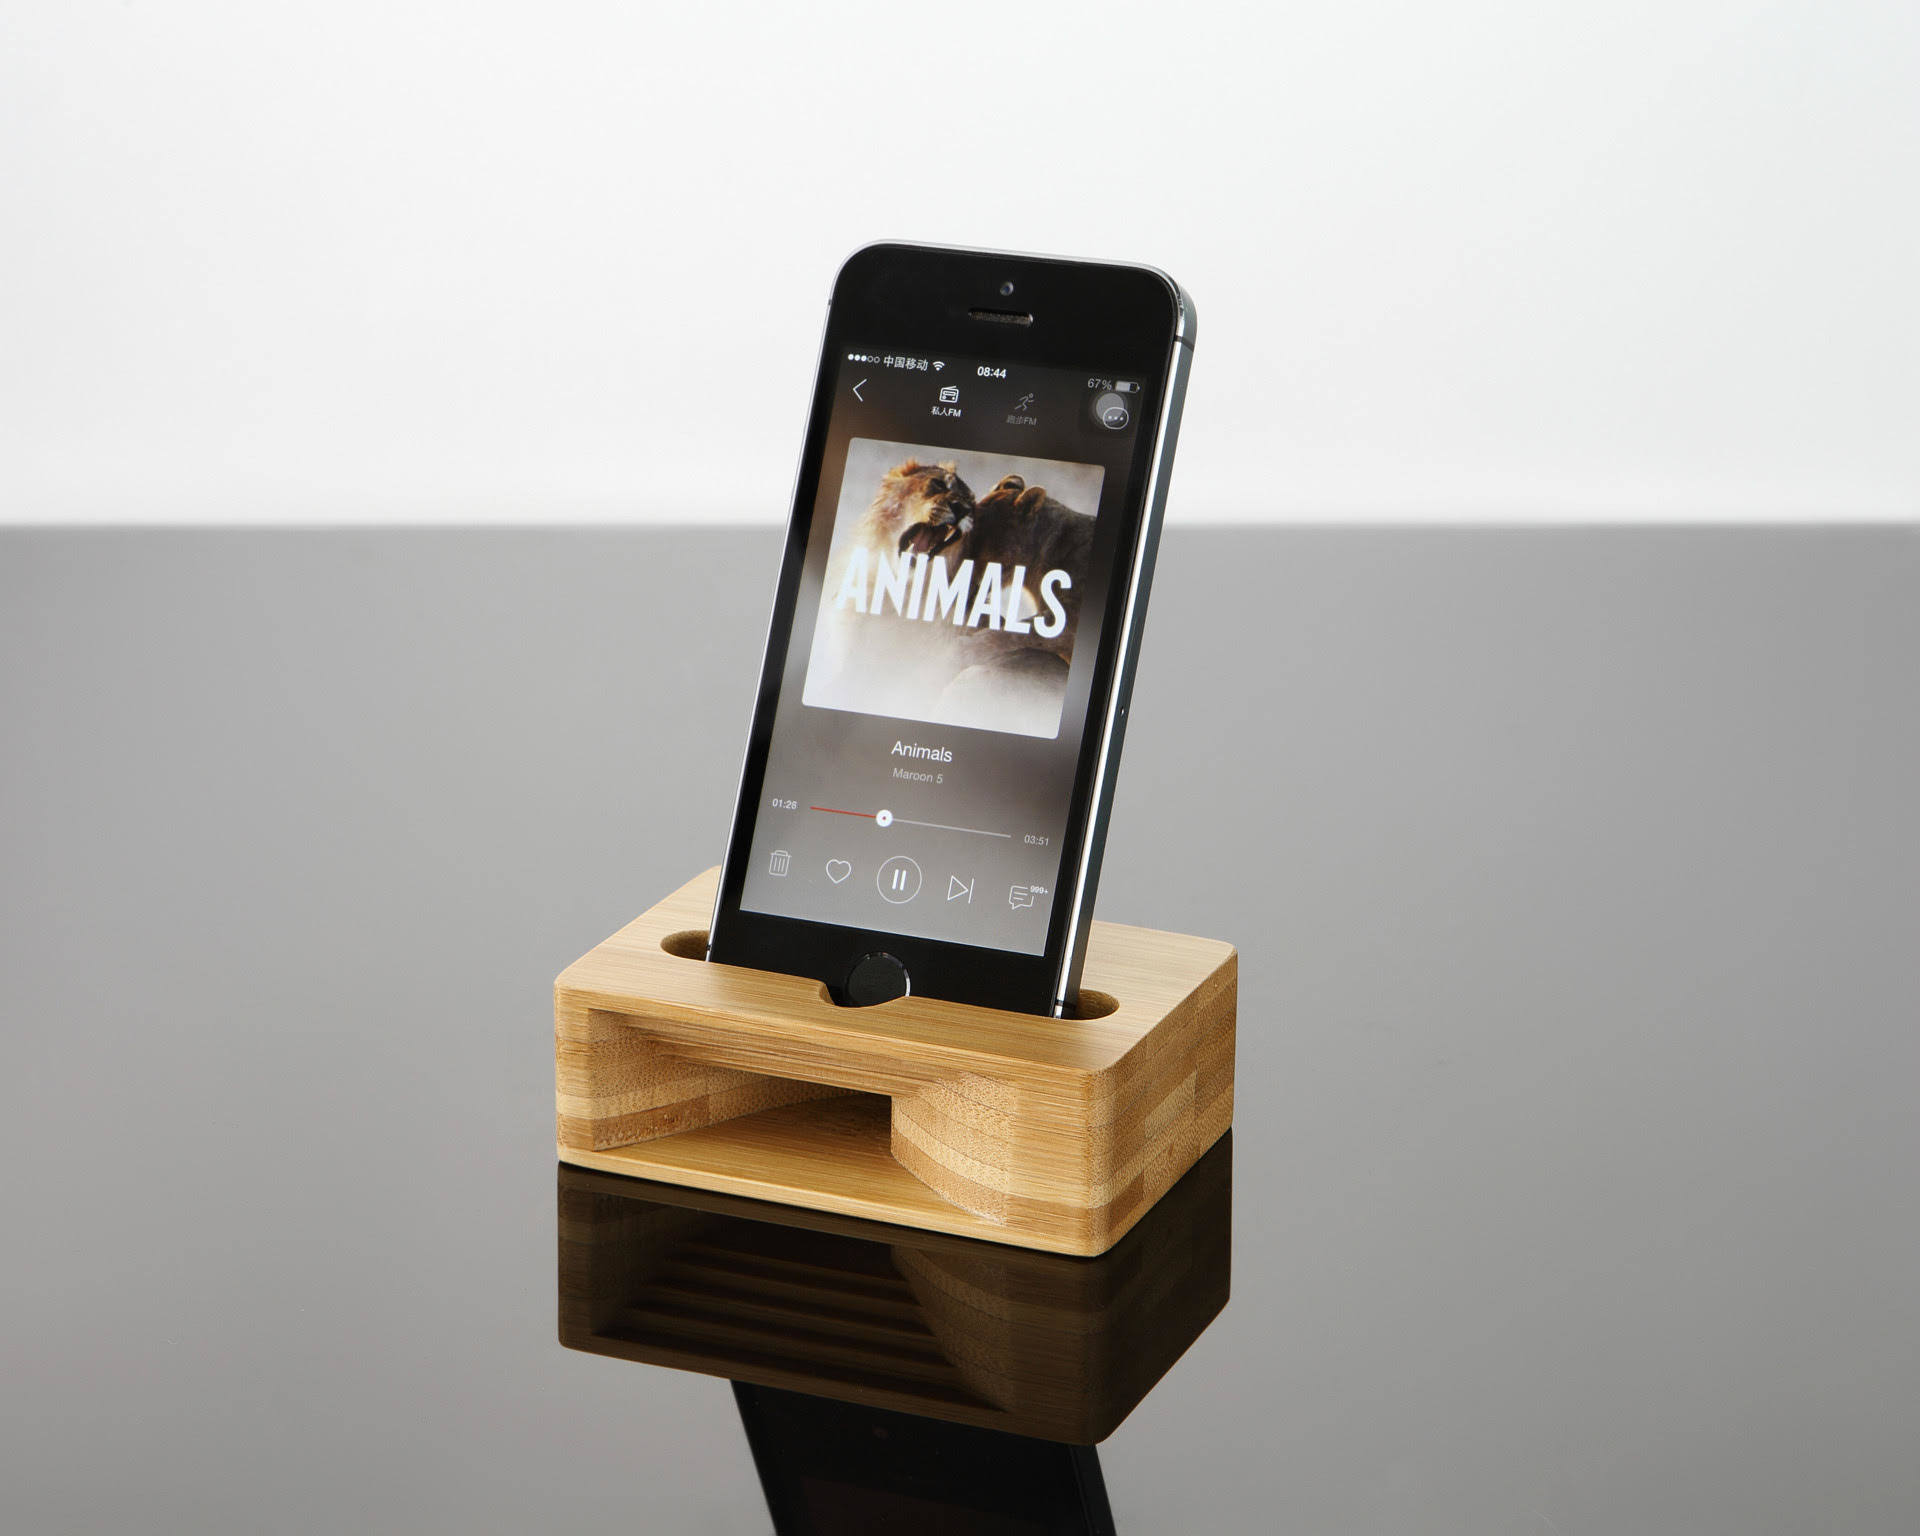 Smartphone Bamboo Speaker - Better Music Without Batteries 5942affd4fe4e566726b975a